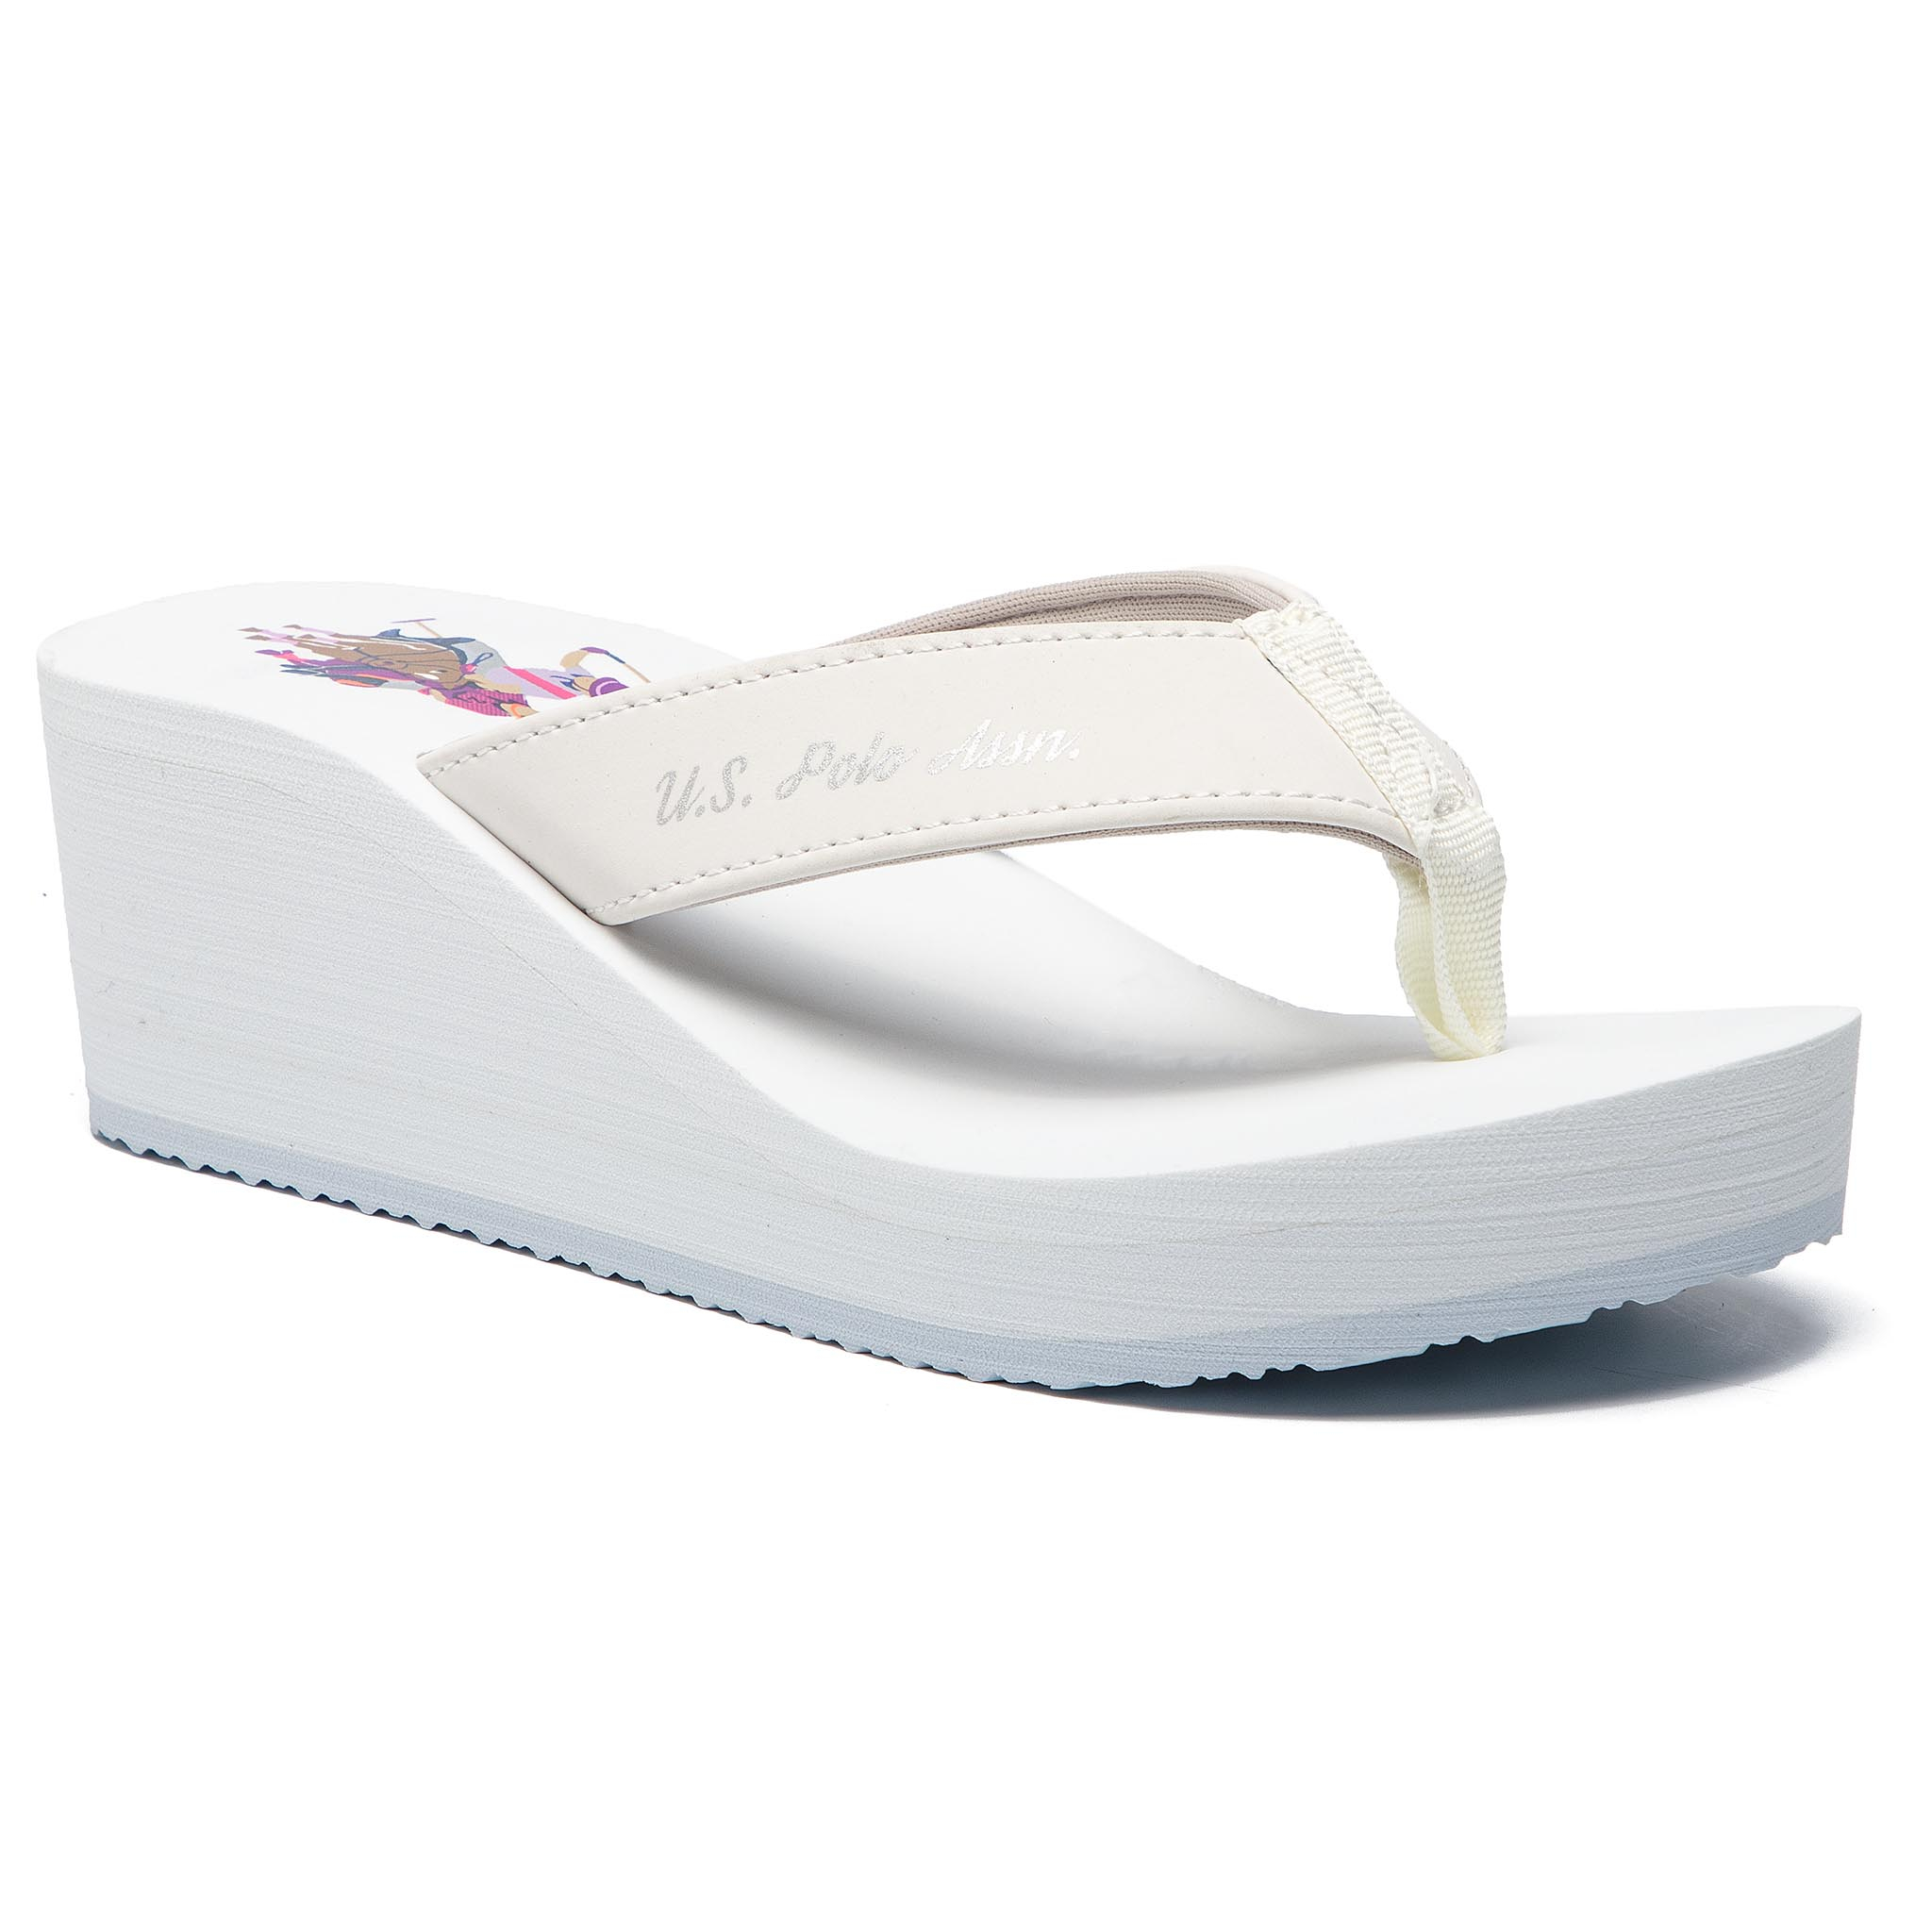 Chanclas U.S. POLO ASSN. - Tansy1 CHANT4199S8/Y1A Whi